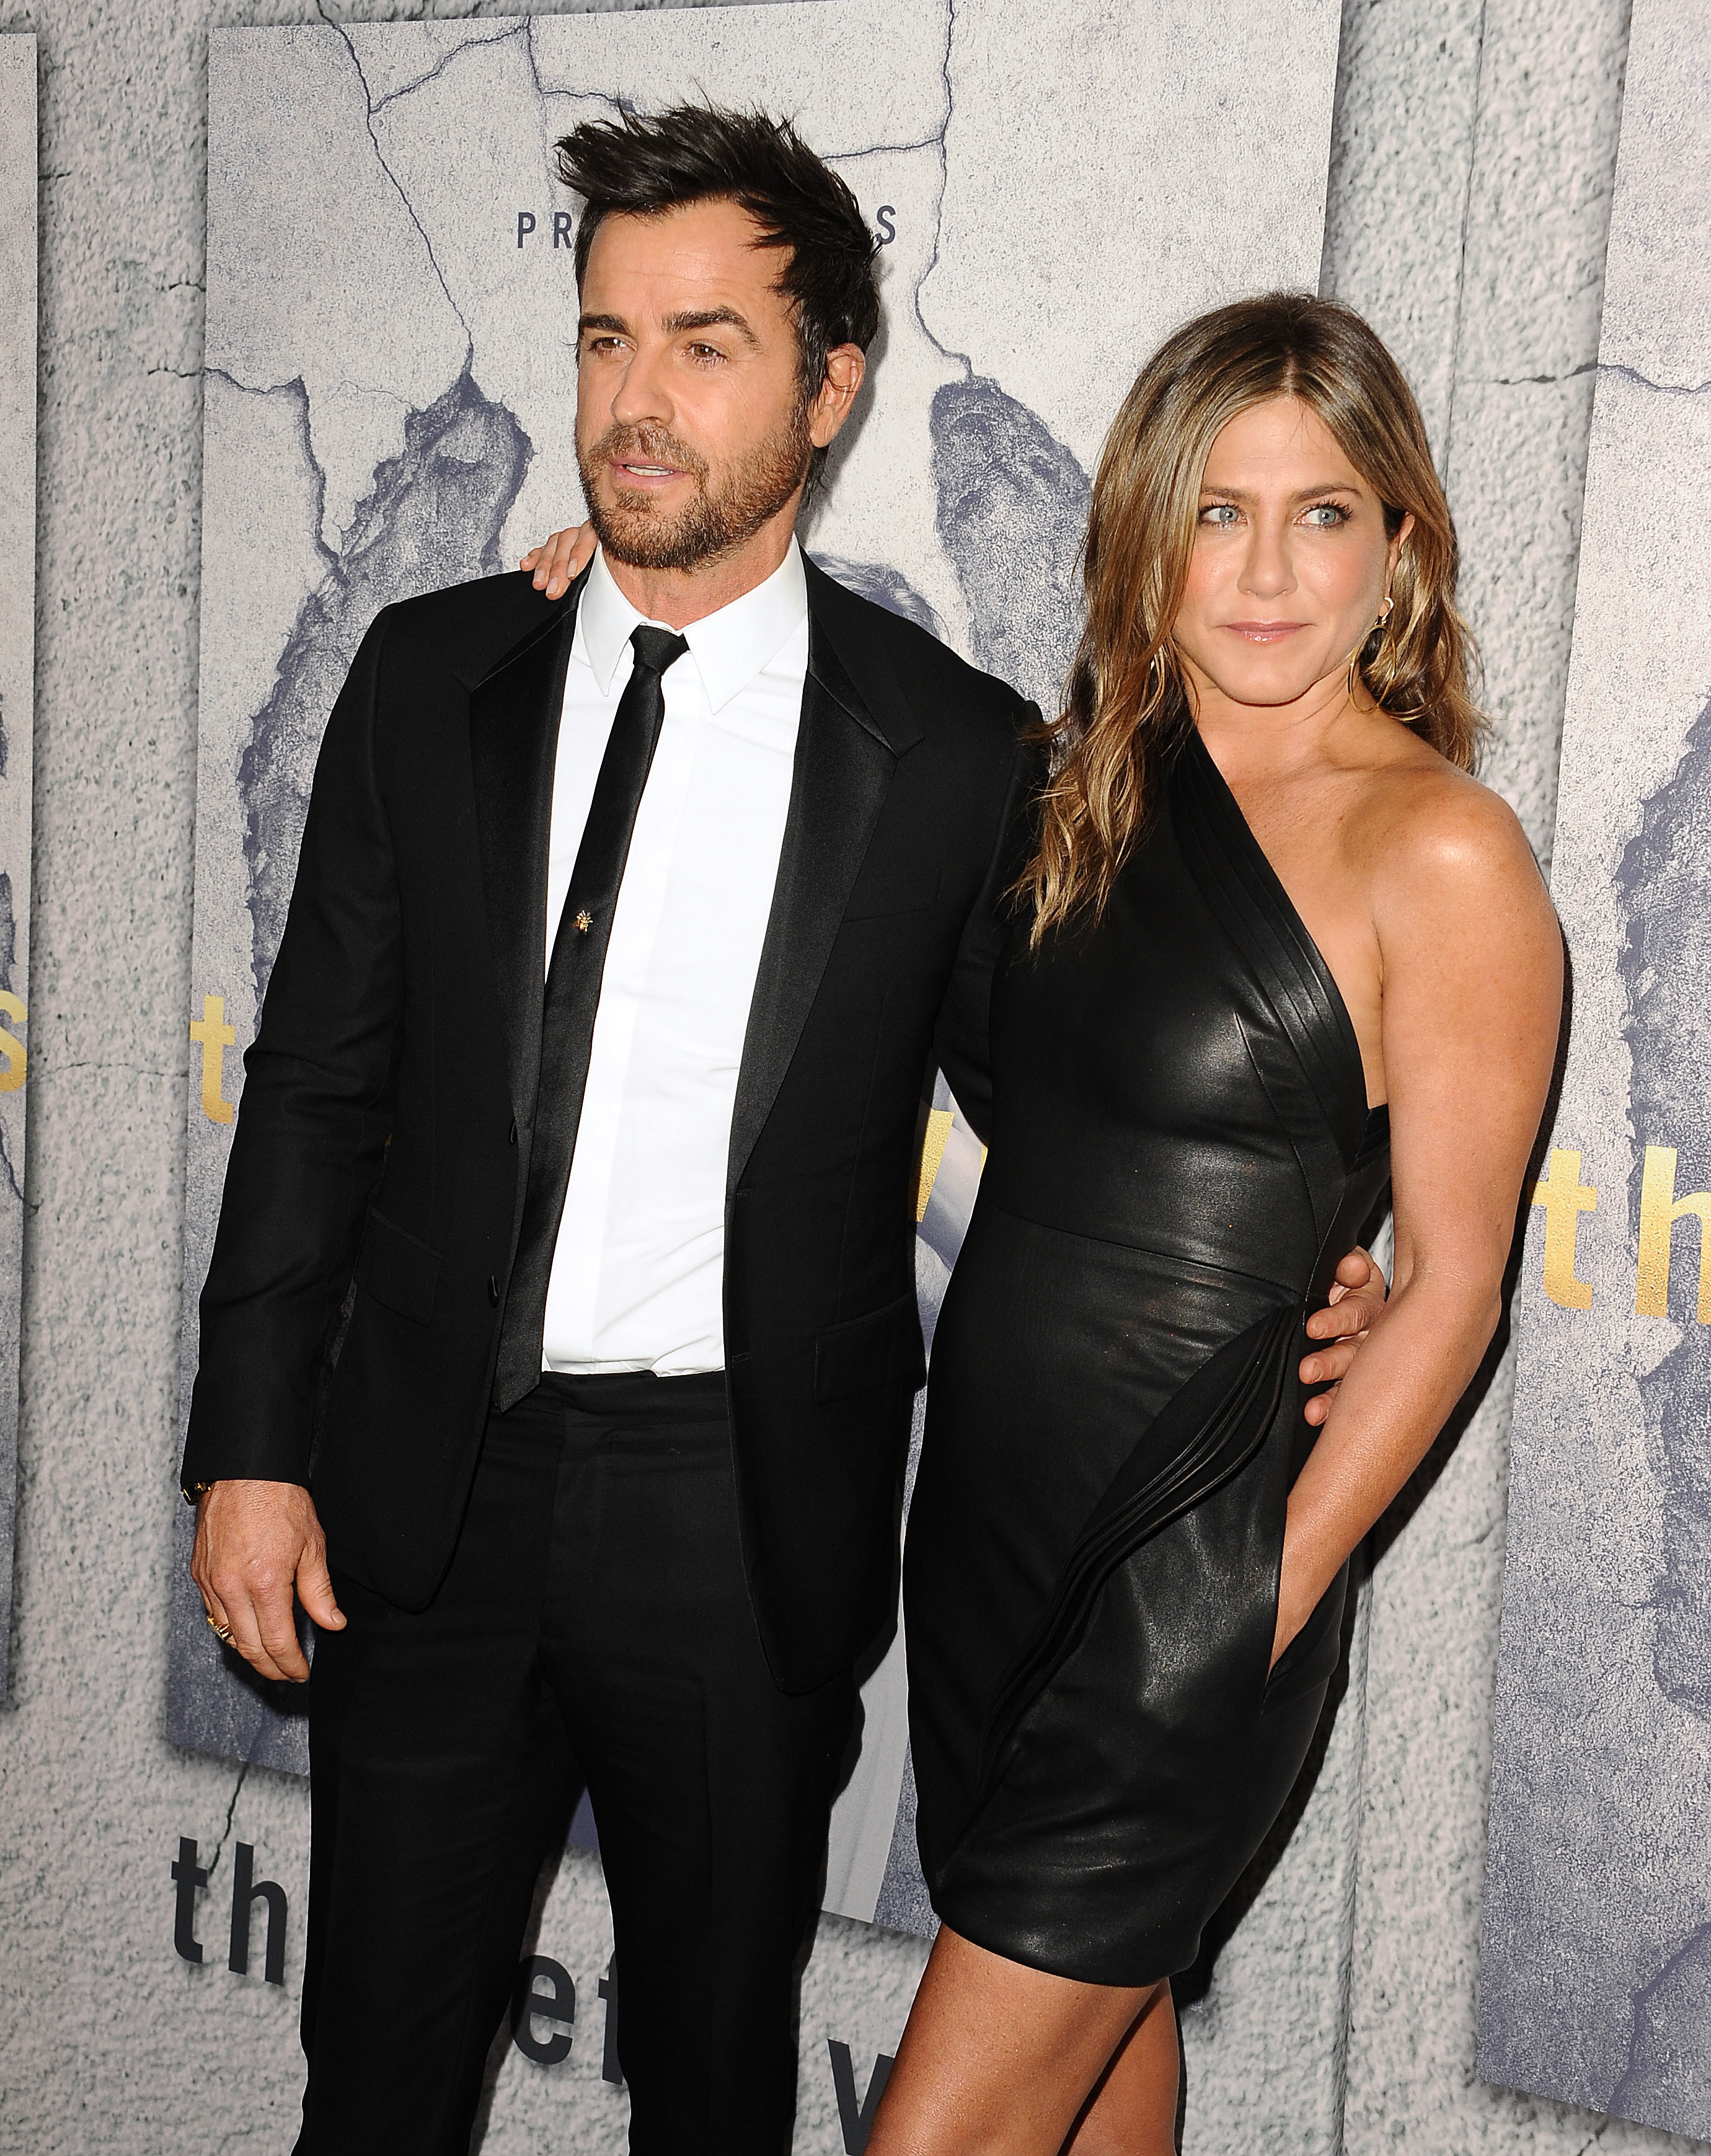 Theroux and Aniston at the Season 3 premiere of The Leftovers in 2017